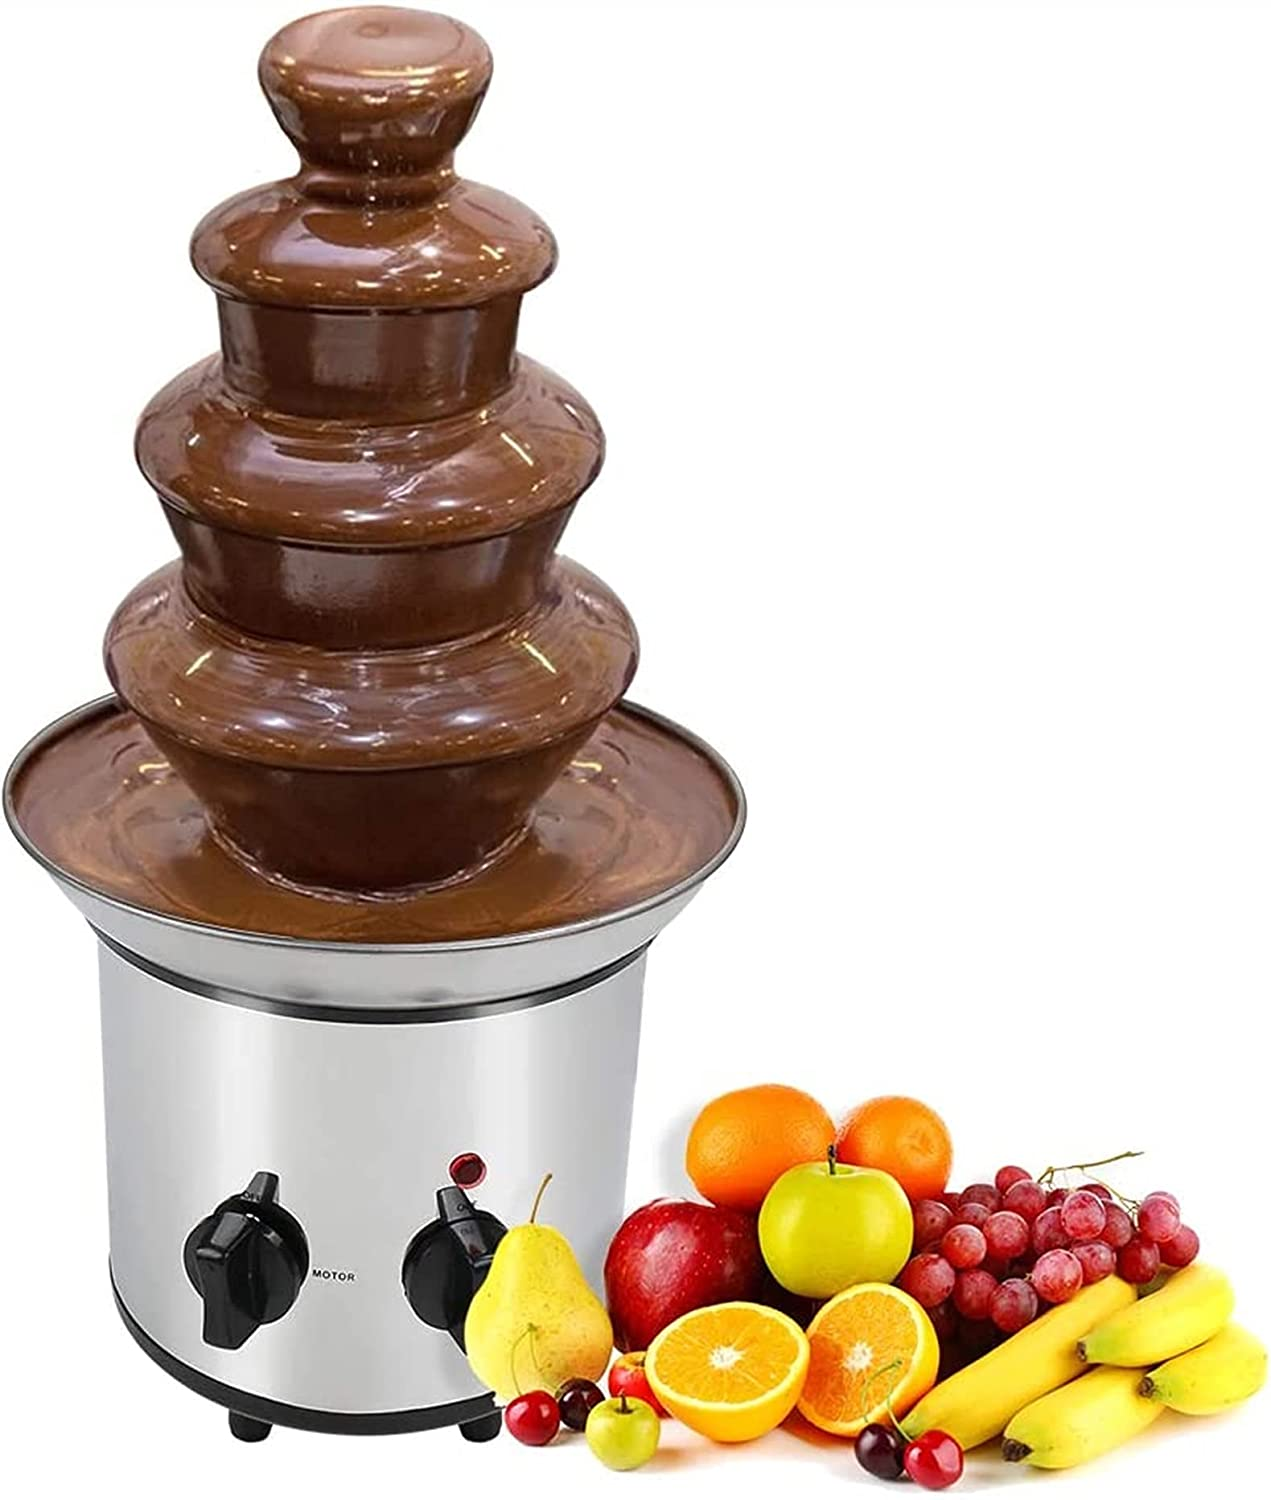 Cholate Fondue Fountain Chocolate Discount Special price for a limited time is also underway Warming Melting 4-Tier Machine